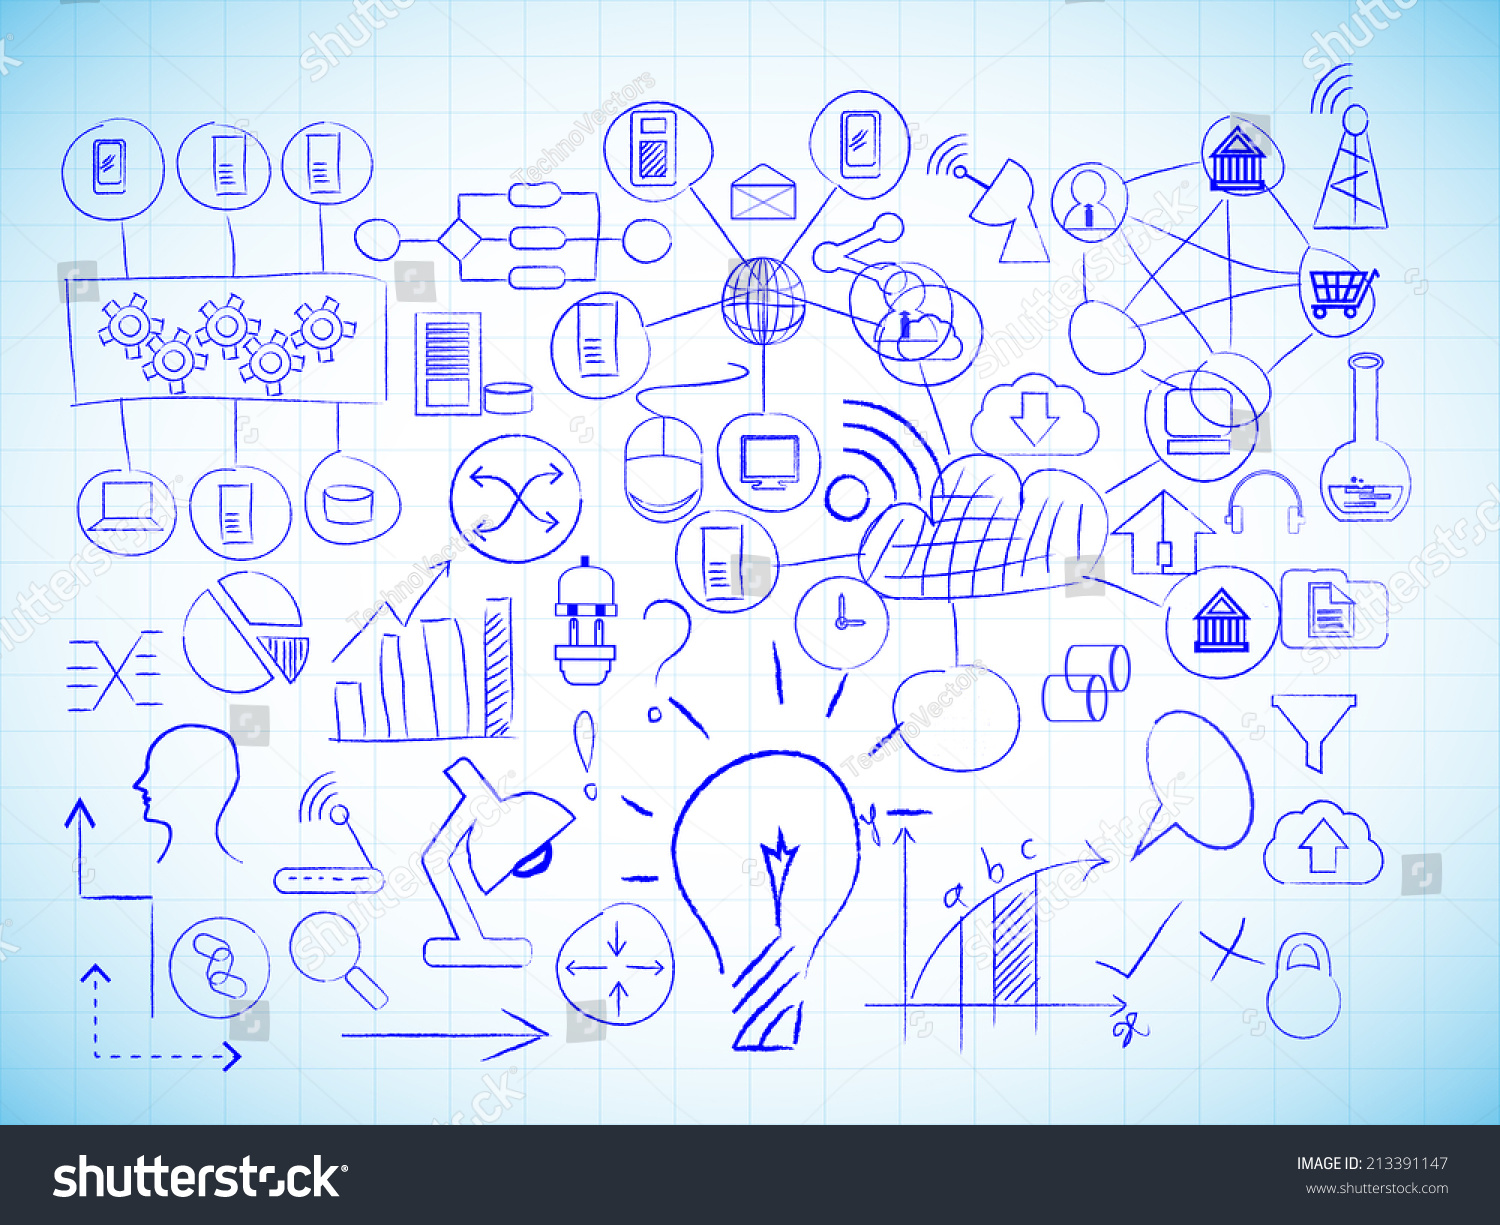 Vector Image Of Information Technology Drawings On A Line ...